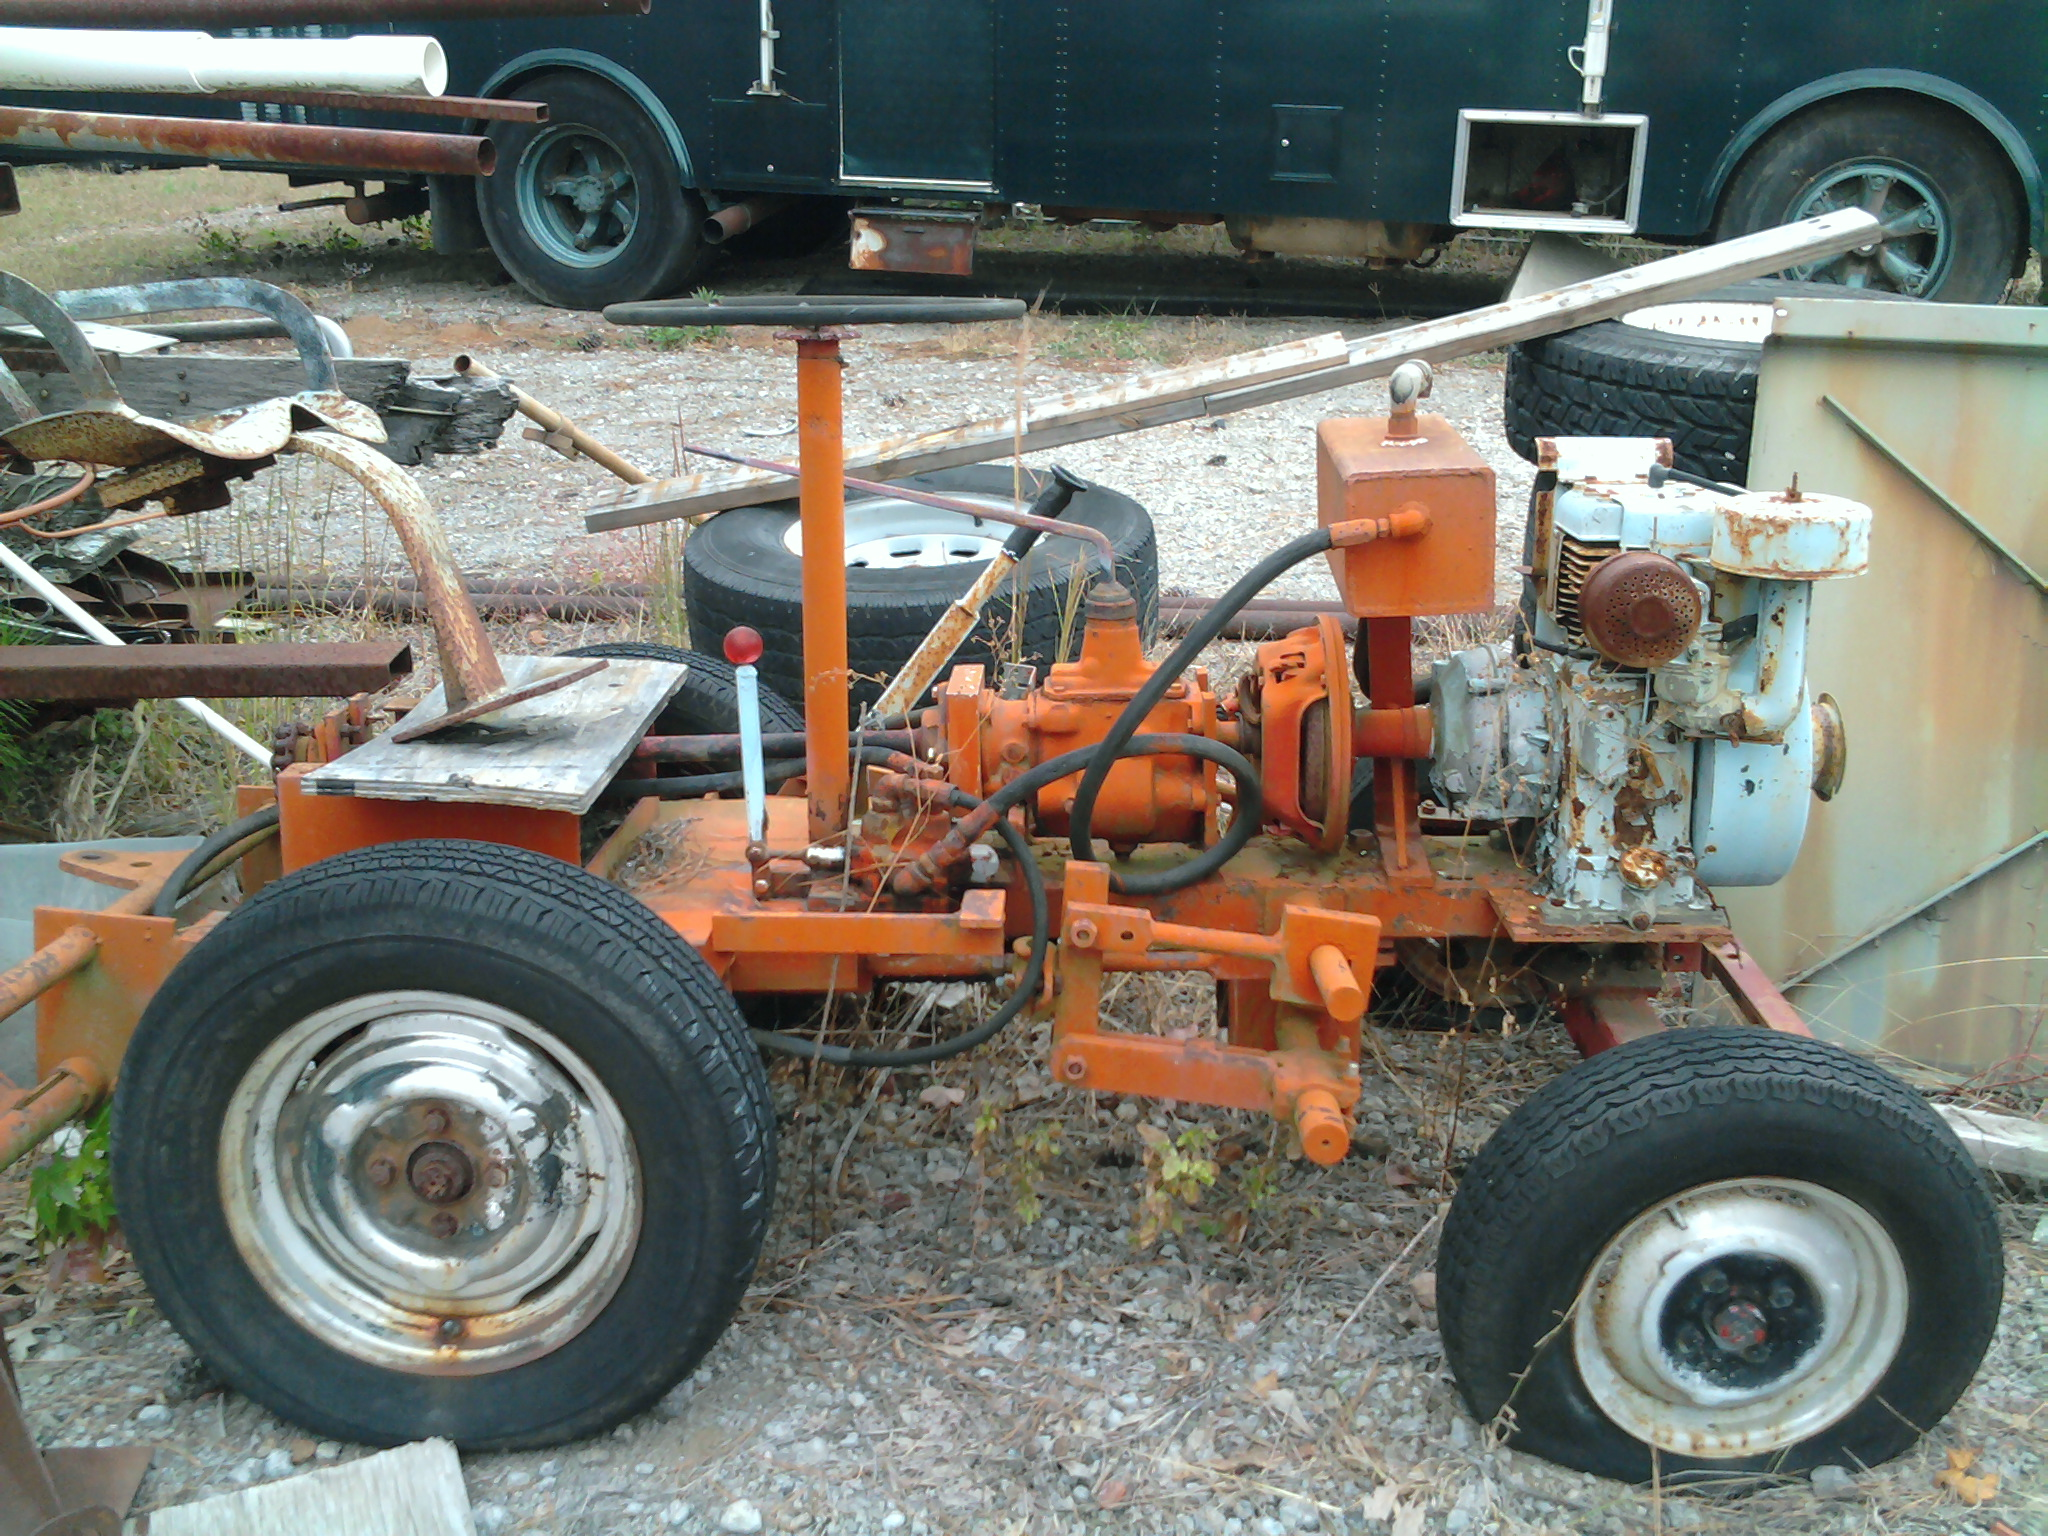 Small Homemade Tractors : Doodlebug tractor a sheep dog project